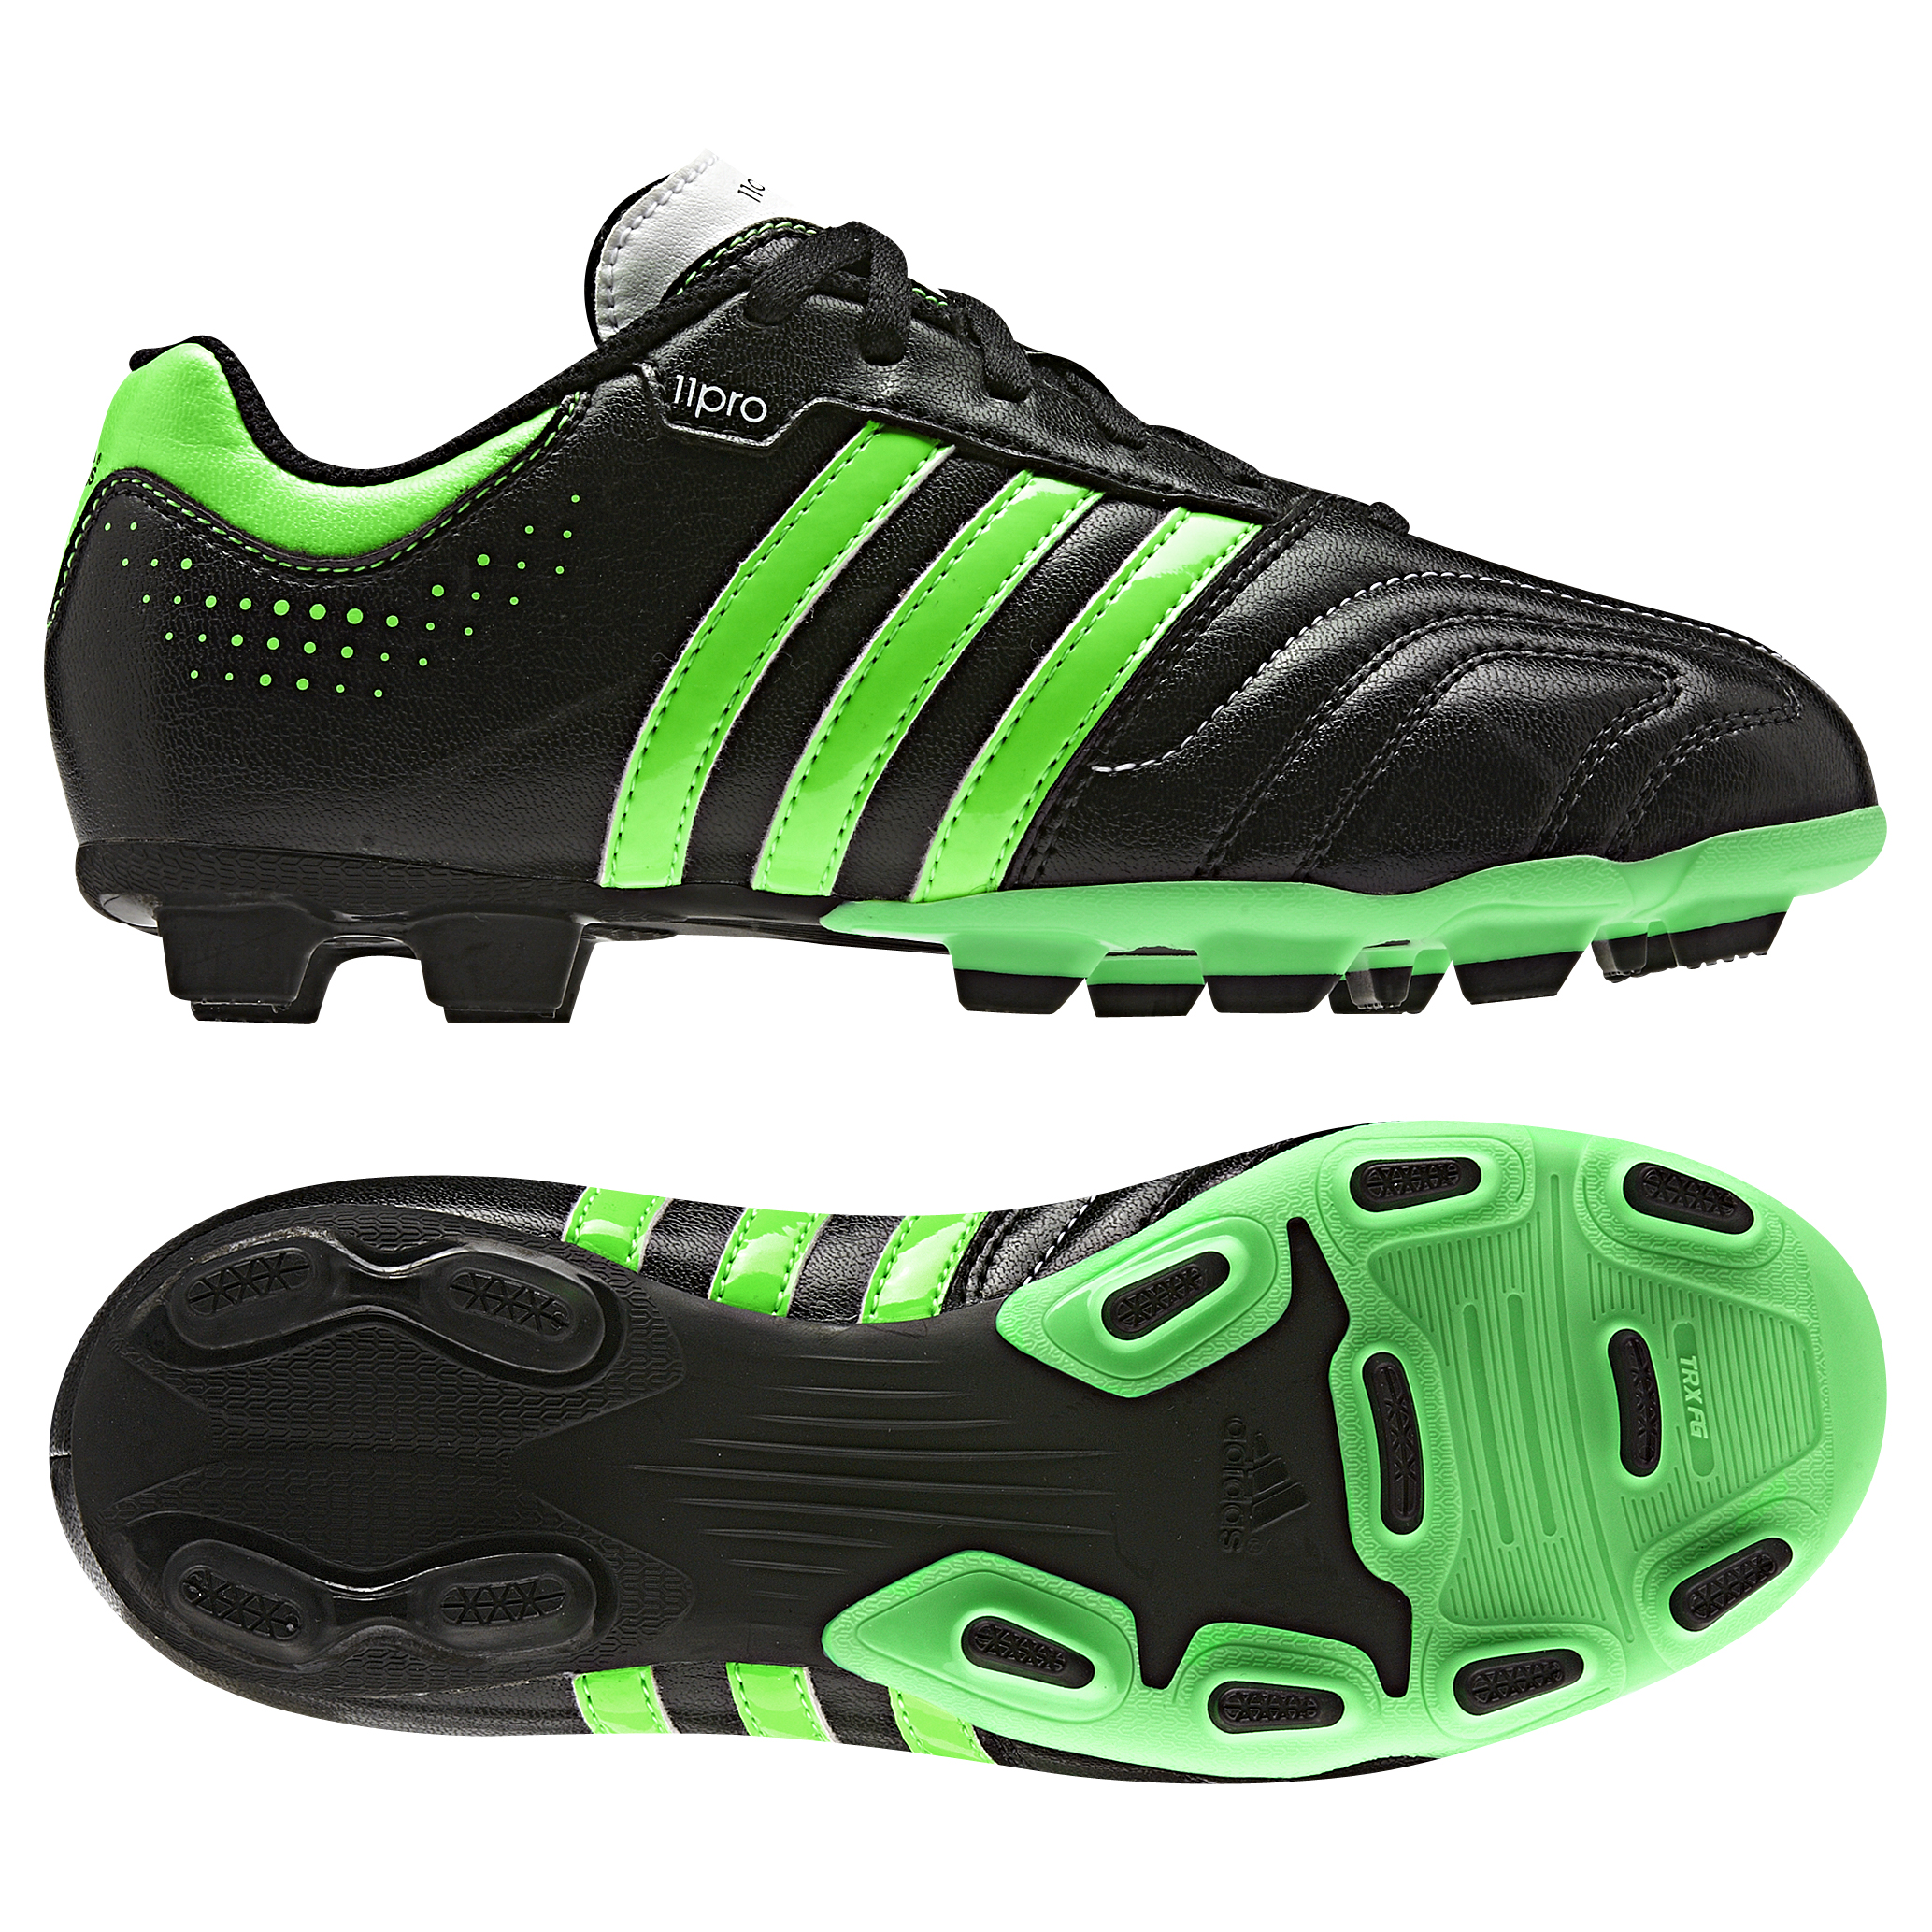 adidas AdiPure 11Questra TRX Firm Ground Football Boots - Black/Green Zest/Running White  - Kids